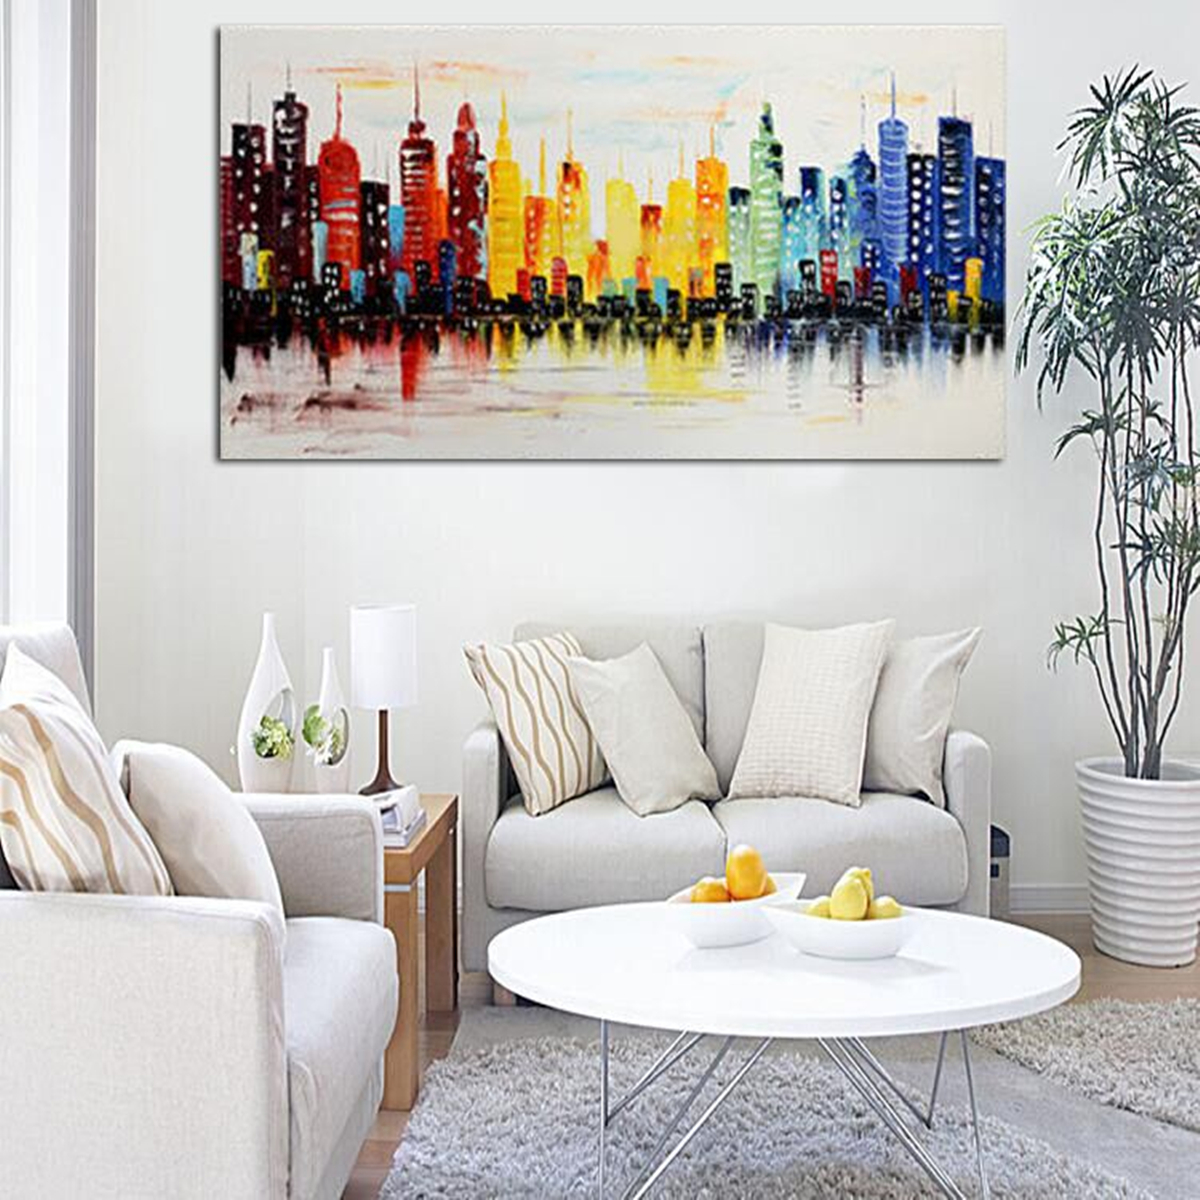 Wall Art For Living Room Idea 120x60cm Modern City Canvas Abstract Painting Print Living